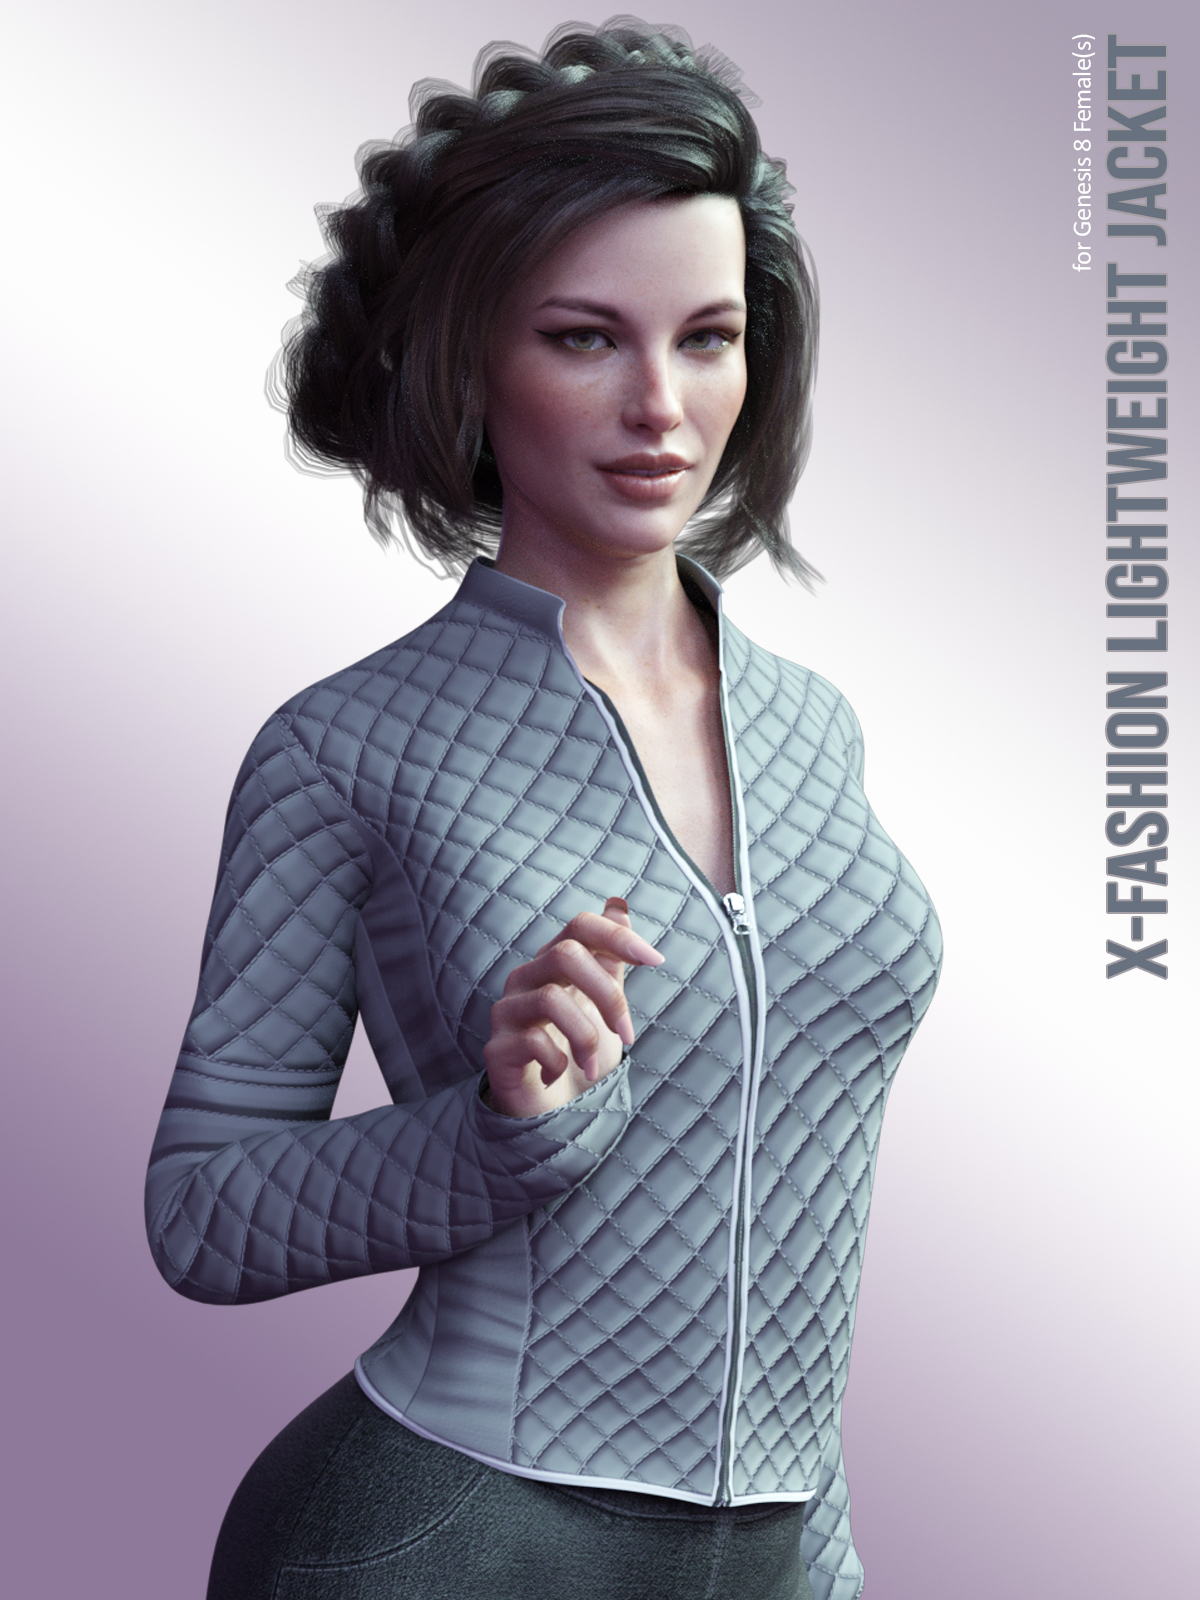 X-Fashion LightWeight Jacket for Genesis 8 Females